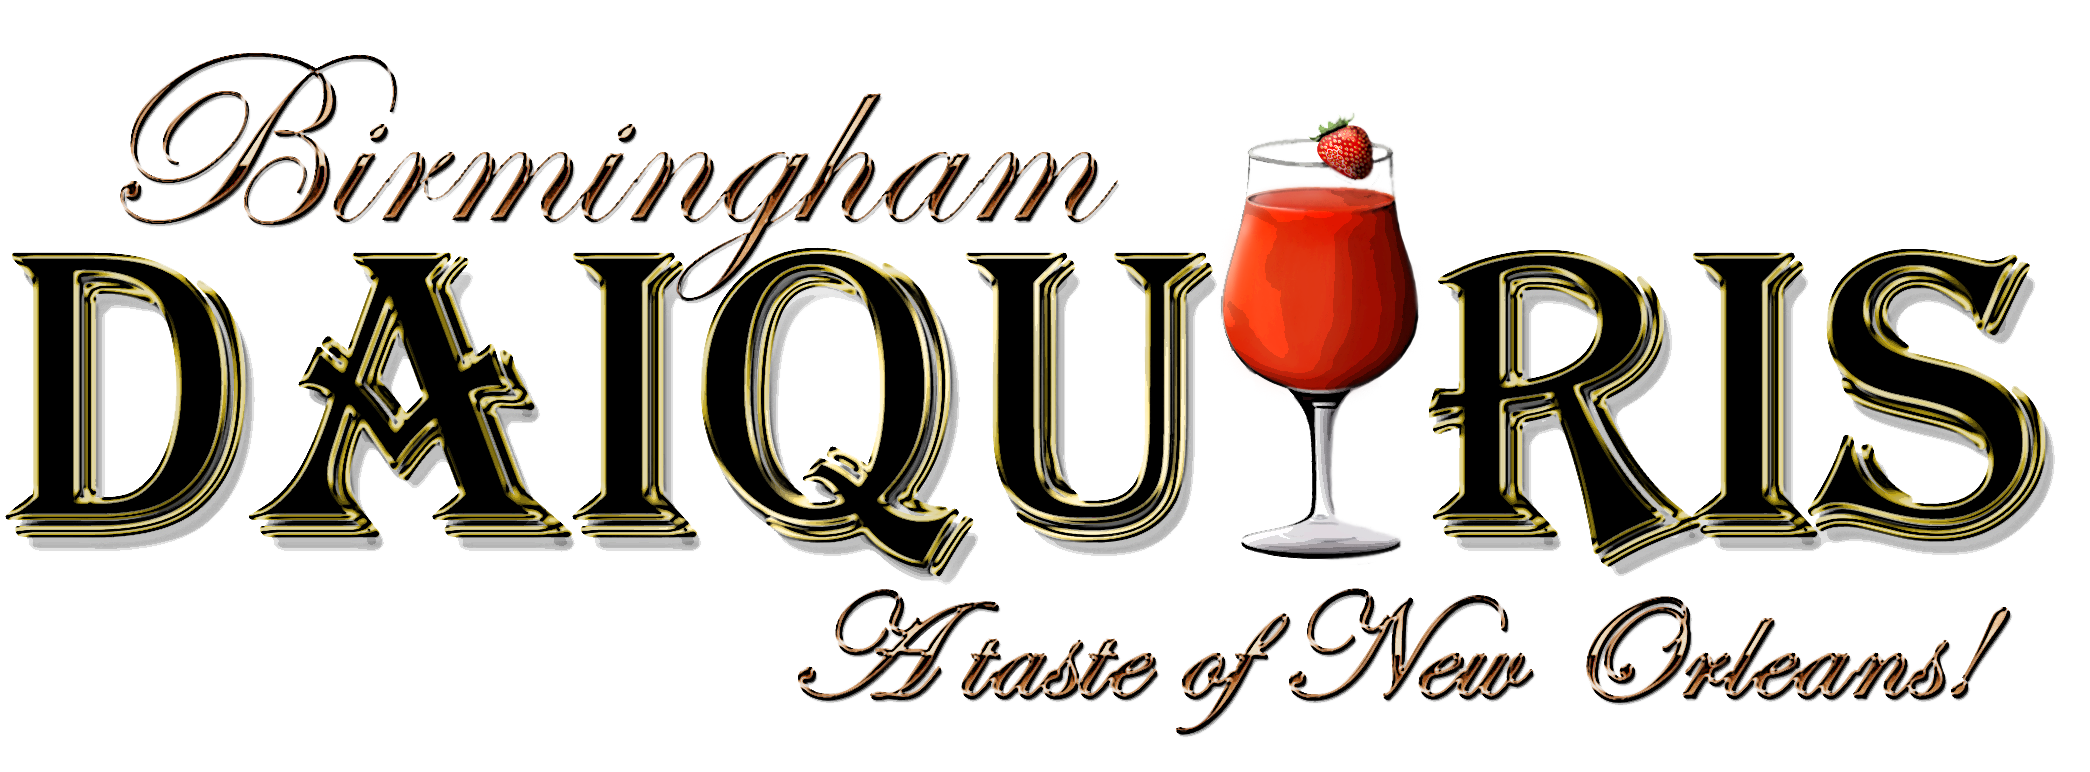 Birmingham Daiquiris